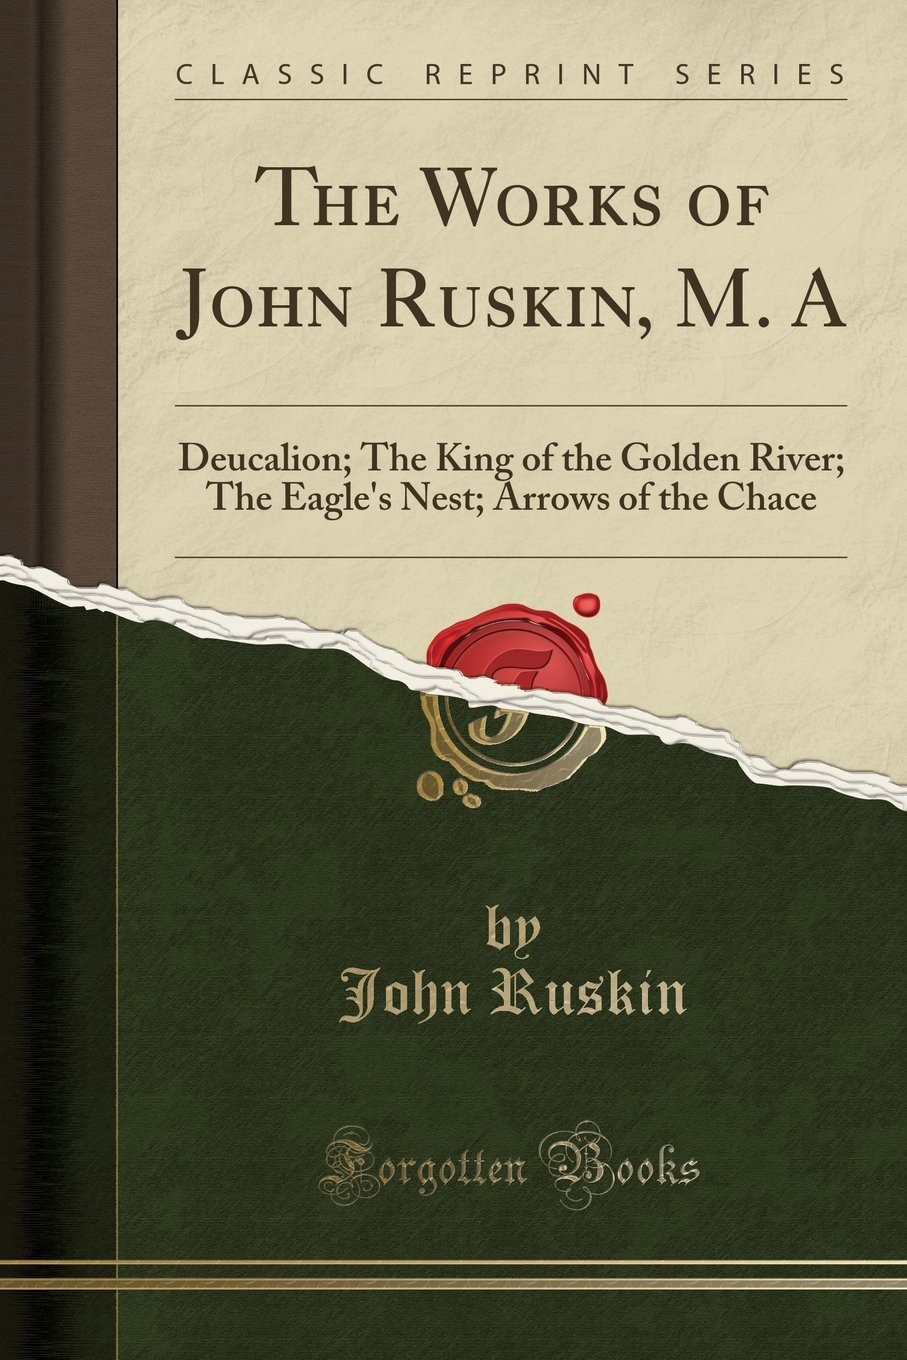 Download The Works of John Ruskin, M. A: Deucalion; The King of the Golden River; The Eagle's Nest; Arrows of the Chace (Classic Reprint) pdf epub